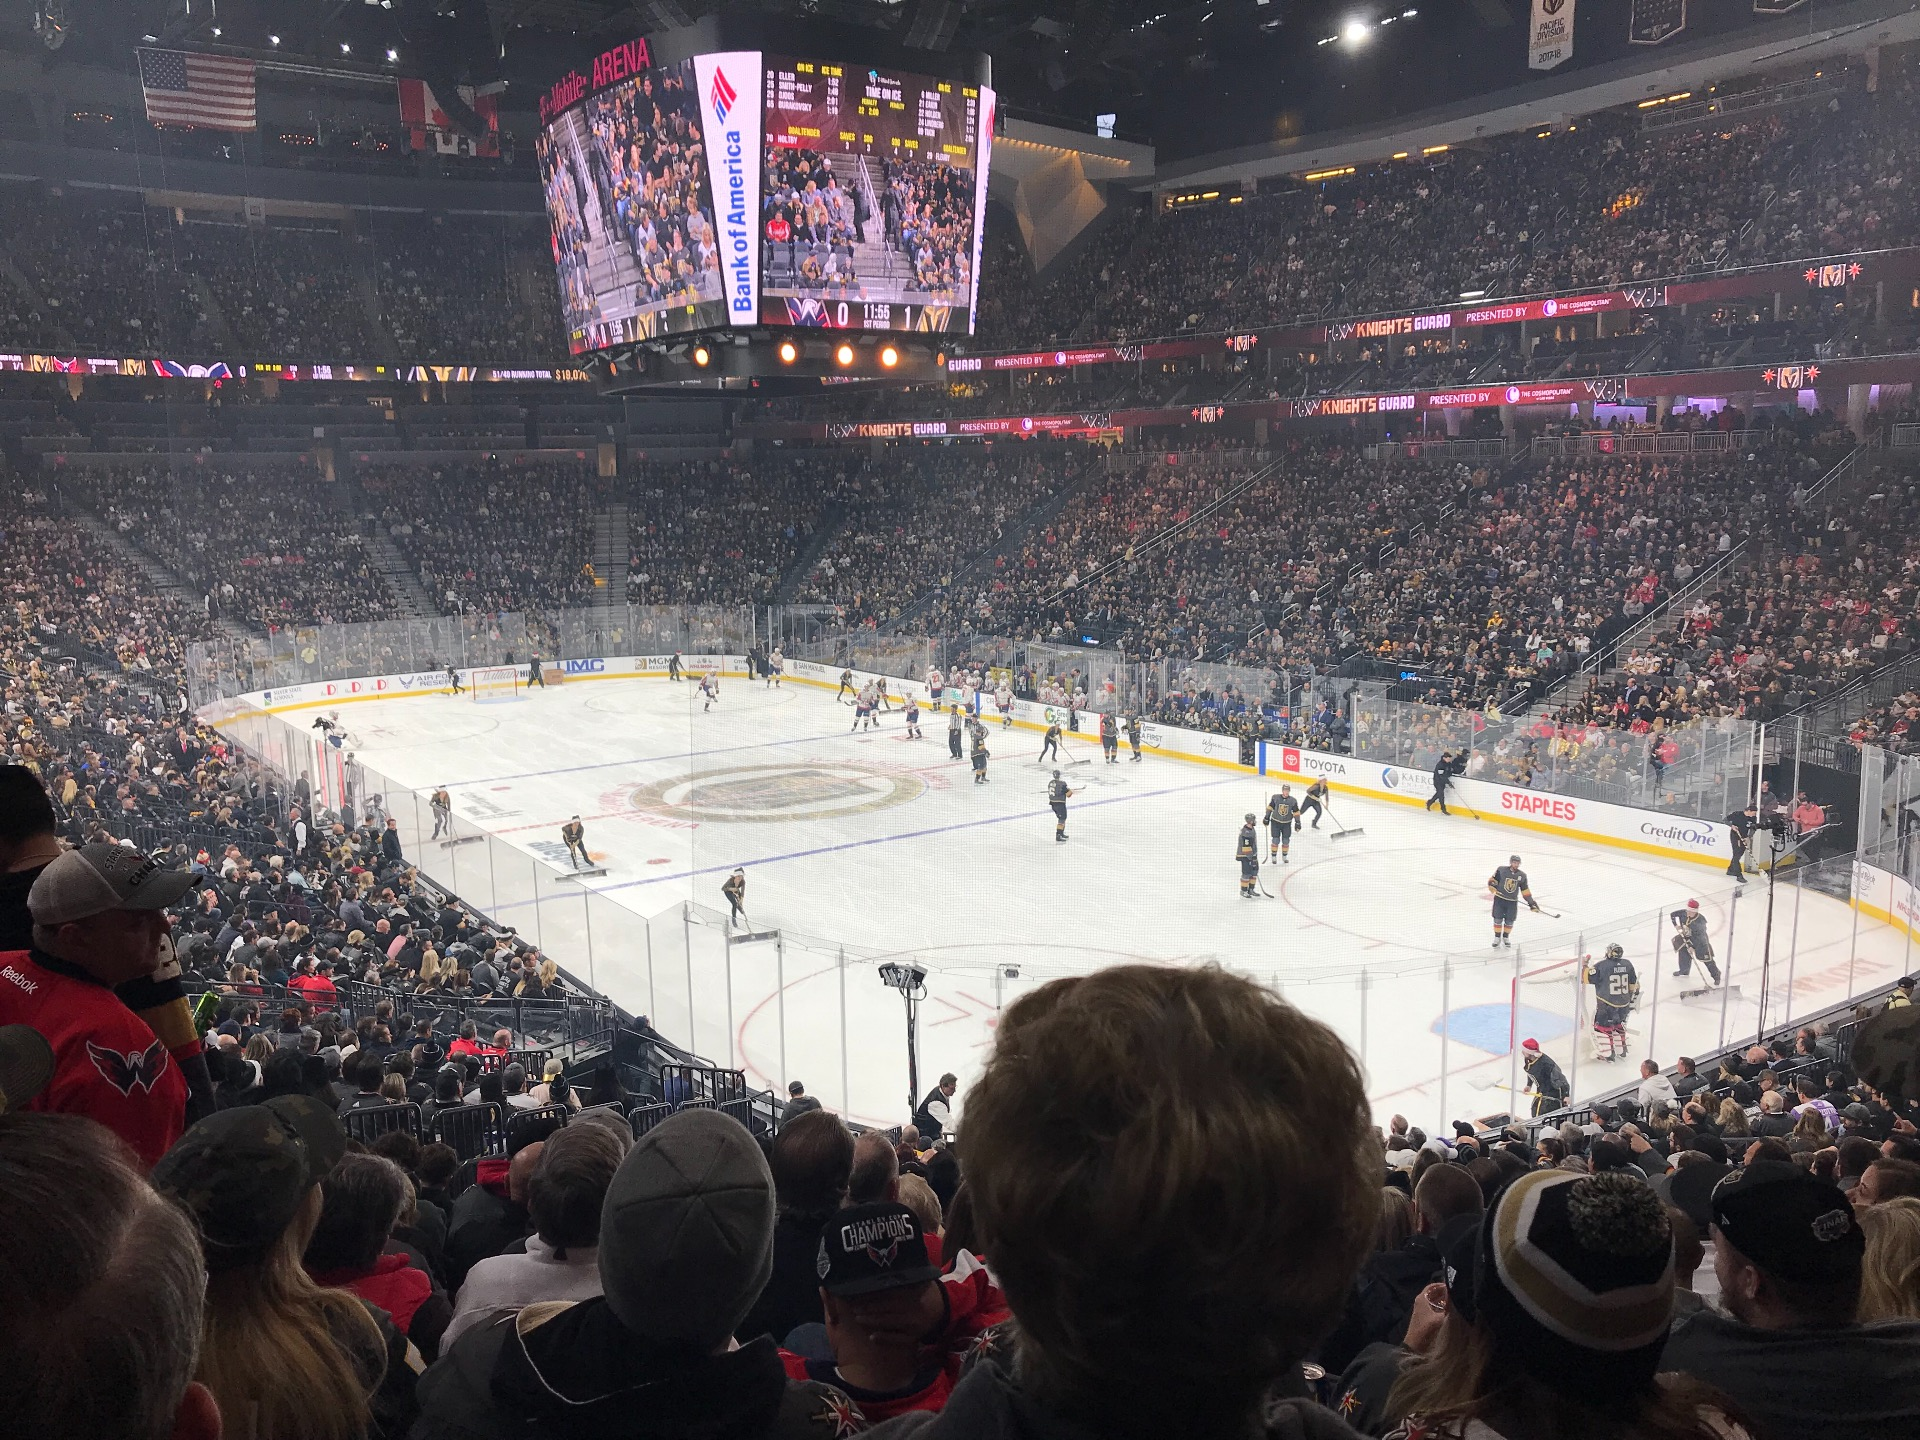 T-Mobile Arena Section 19 Row W Seat 9